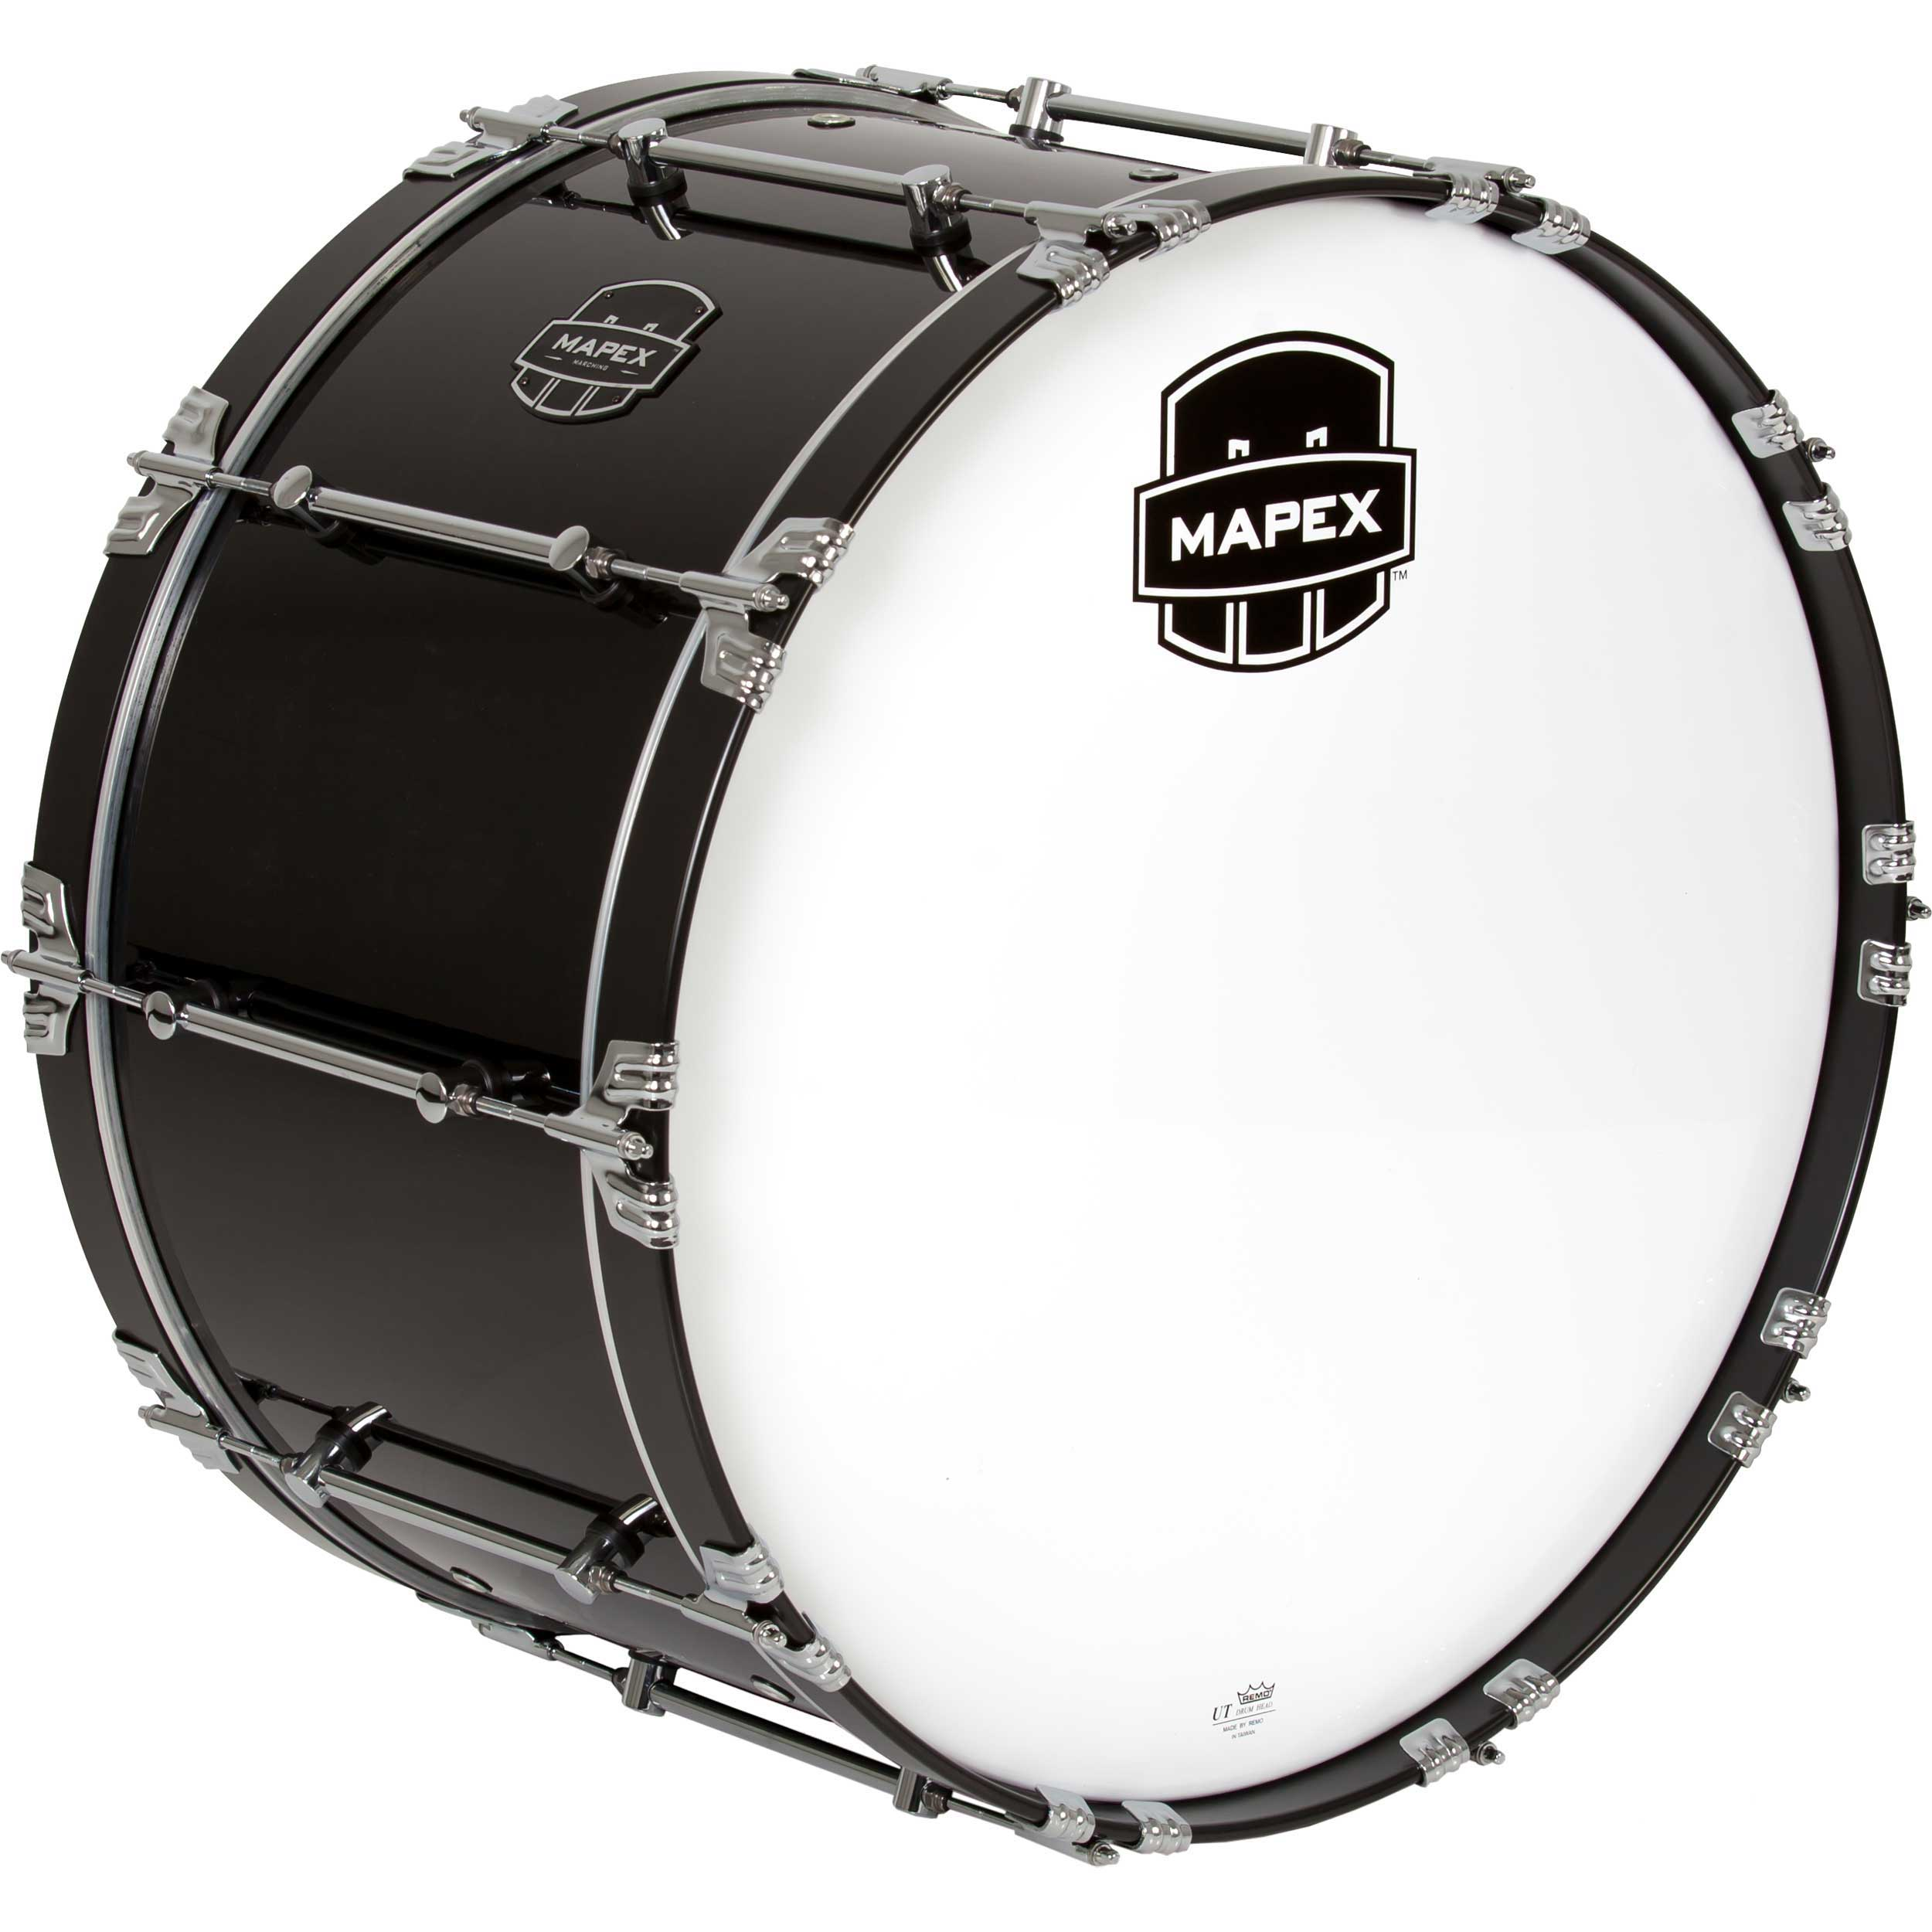 "Mapex 28"" x 14"" Quantum Marching Bass Drum in Gloss Black"